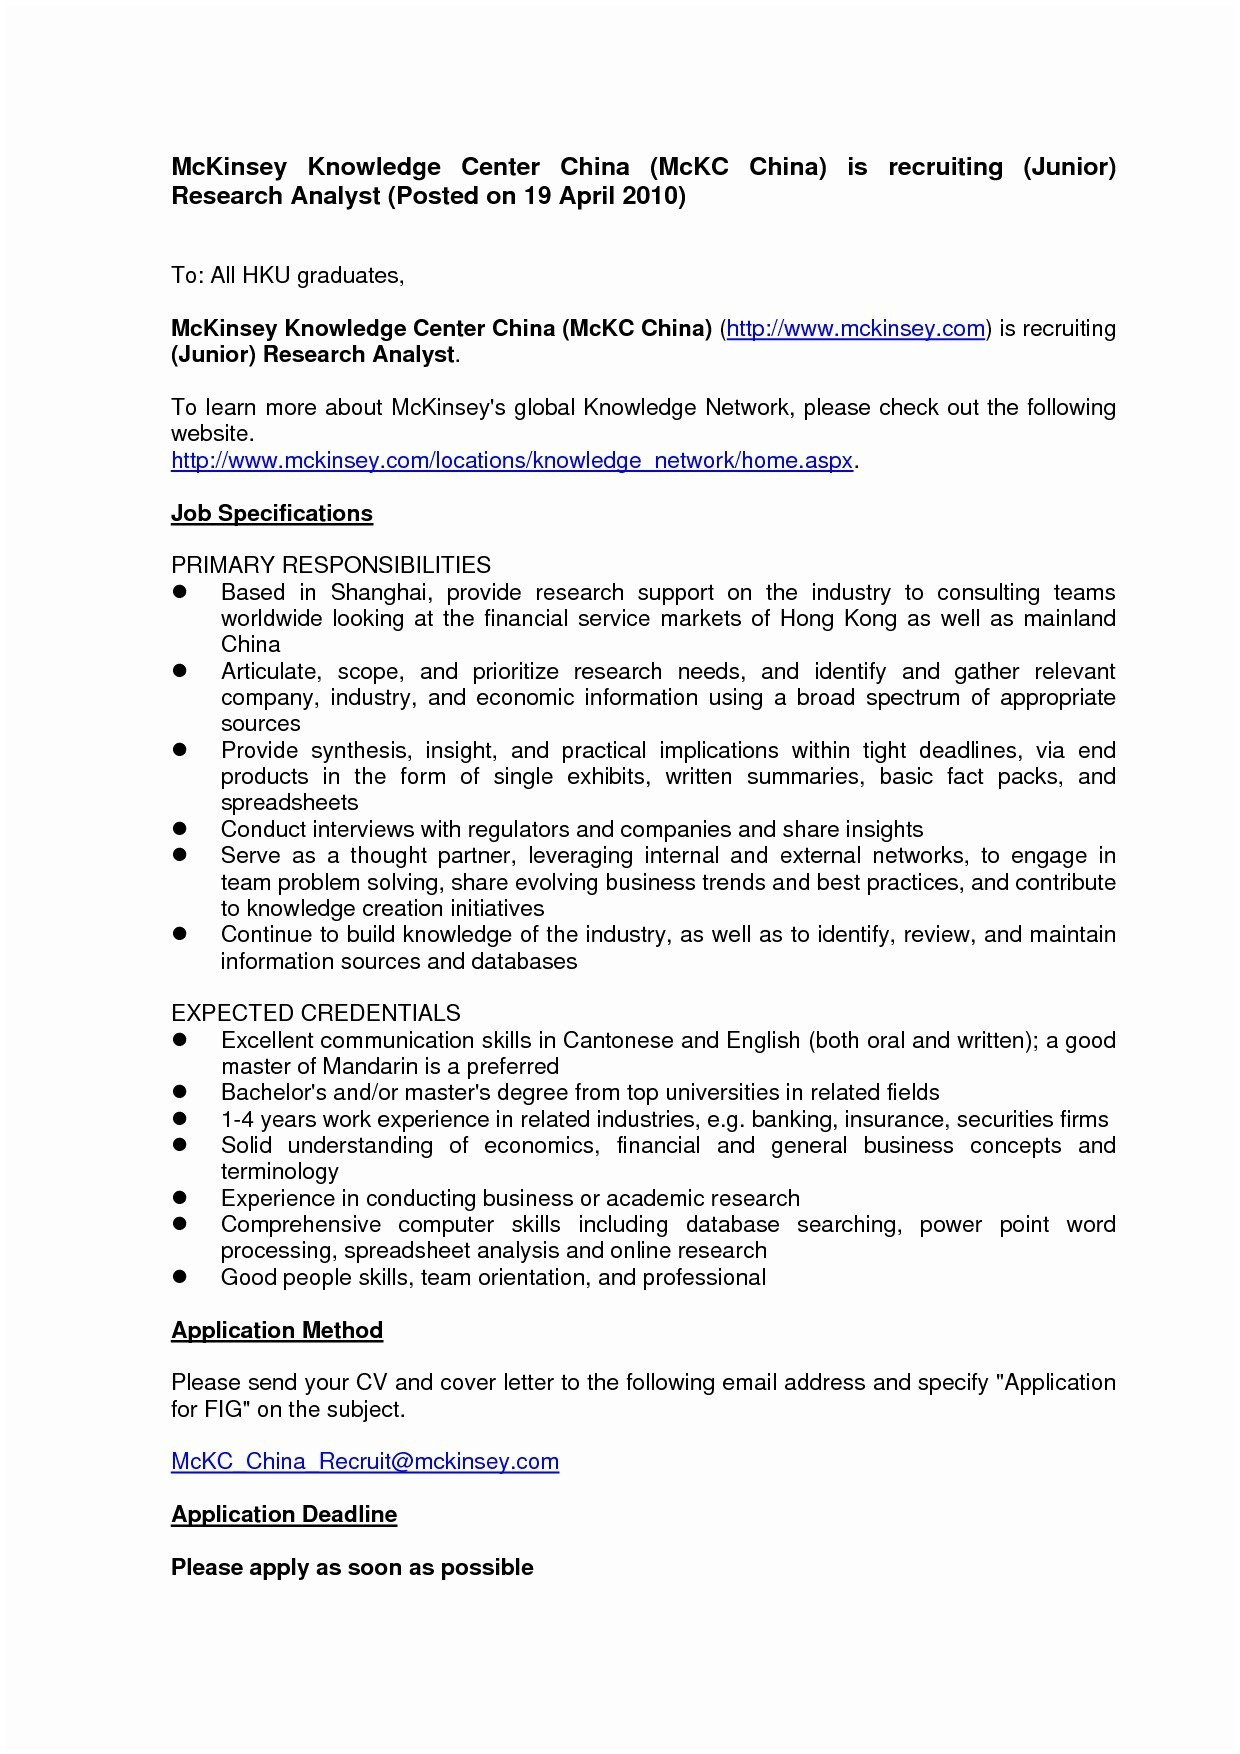 conditional offer of employment letter template example-conditional offer of employment letter template 15-b